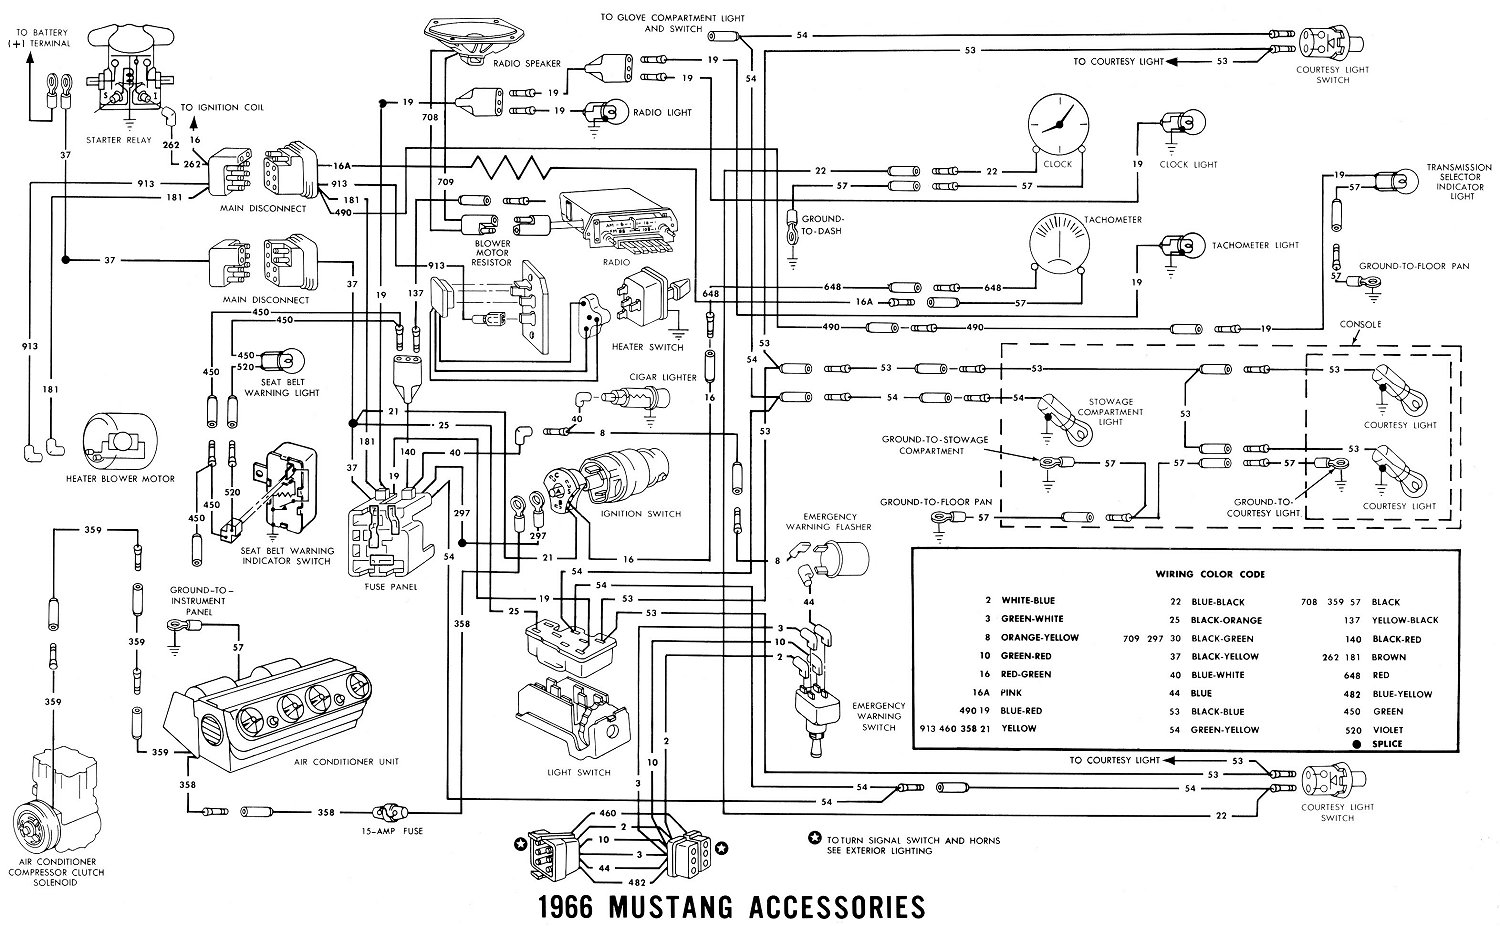 Acces on Buick Century Radio Wiring Diagram